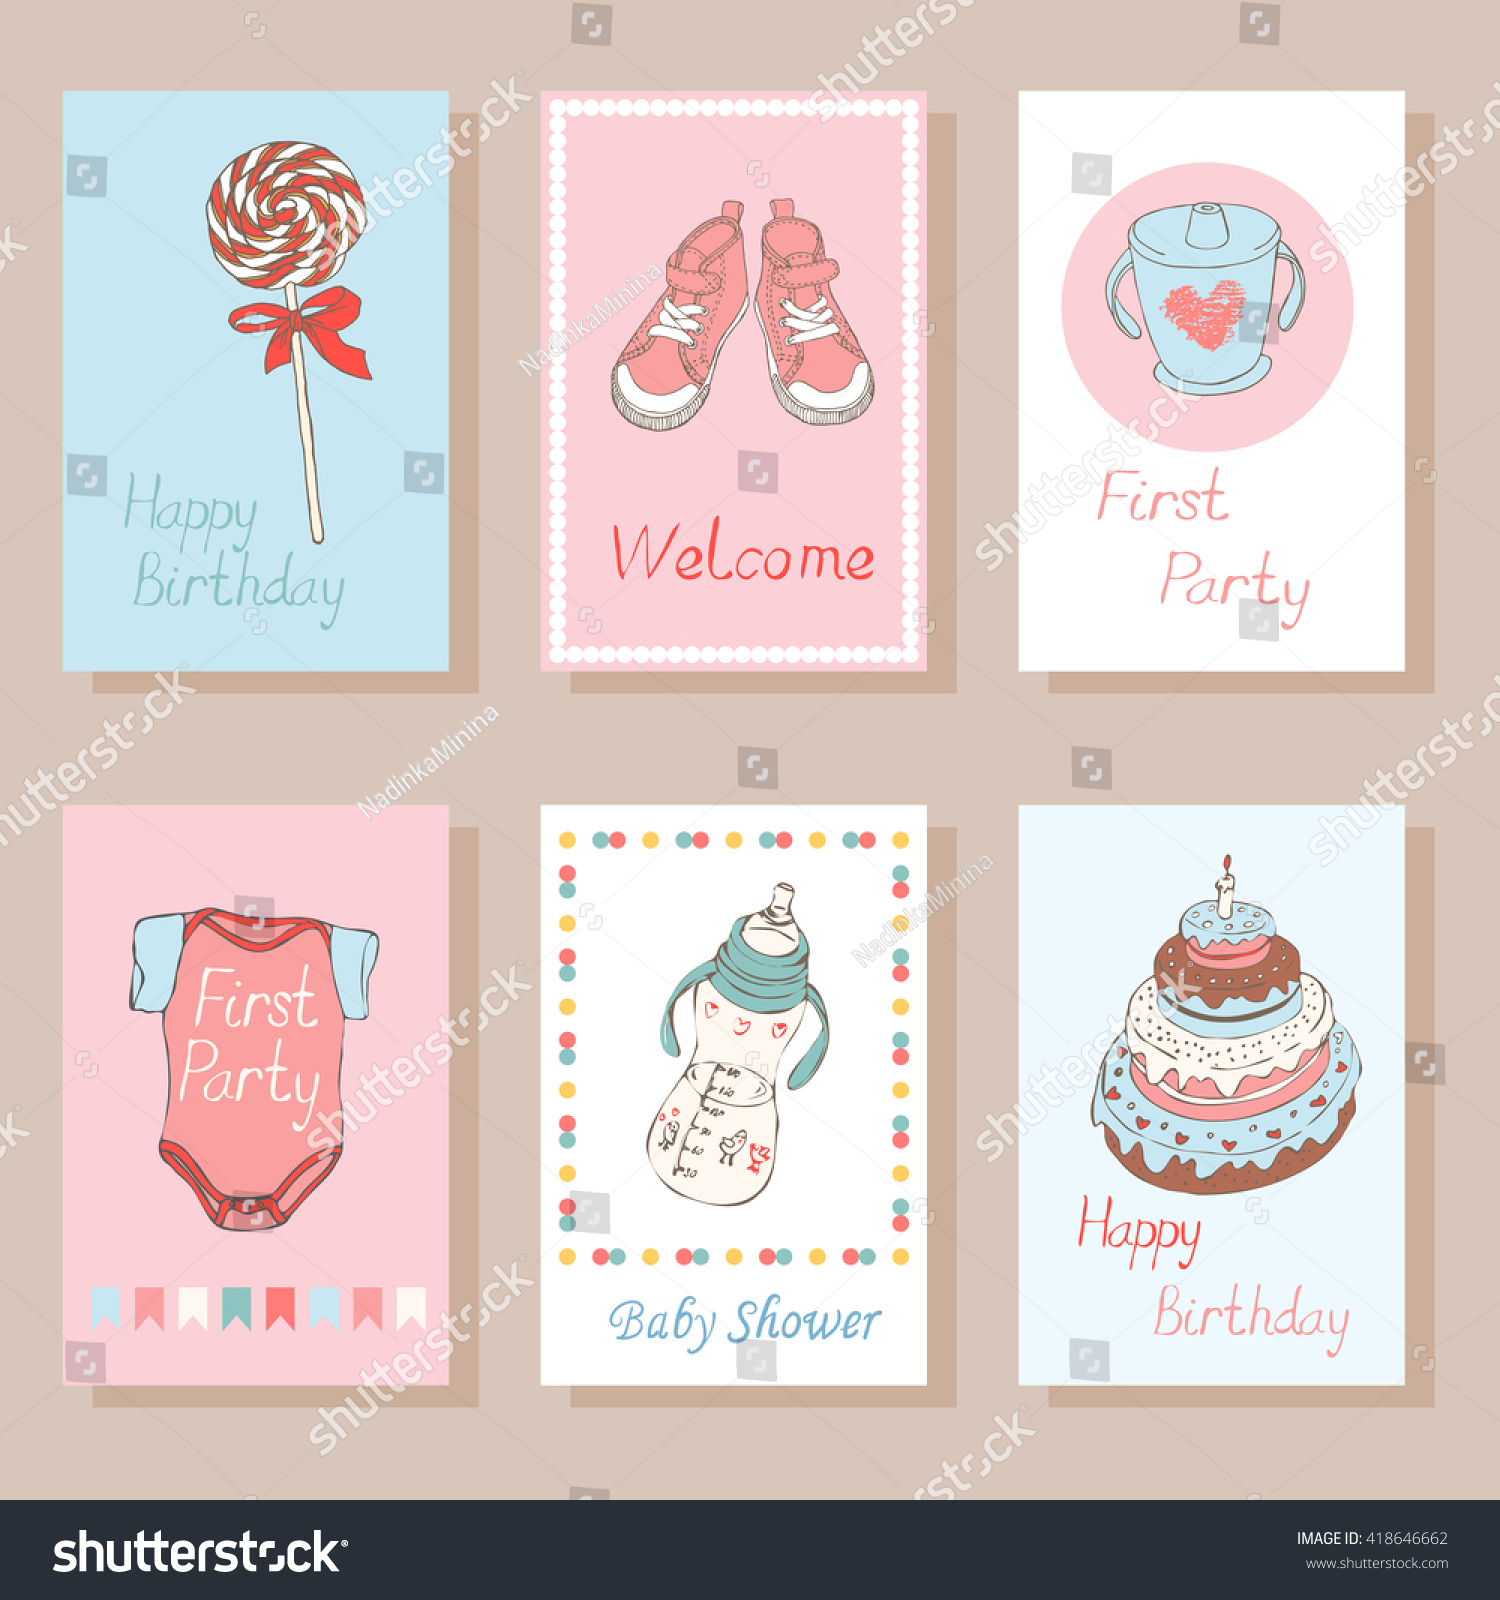 Baby Shower Invitation Templates For Girls was amazing invitation sample